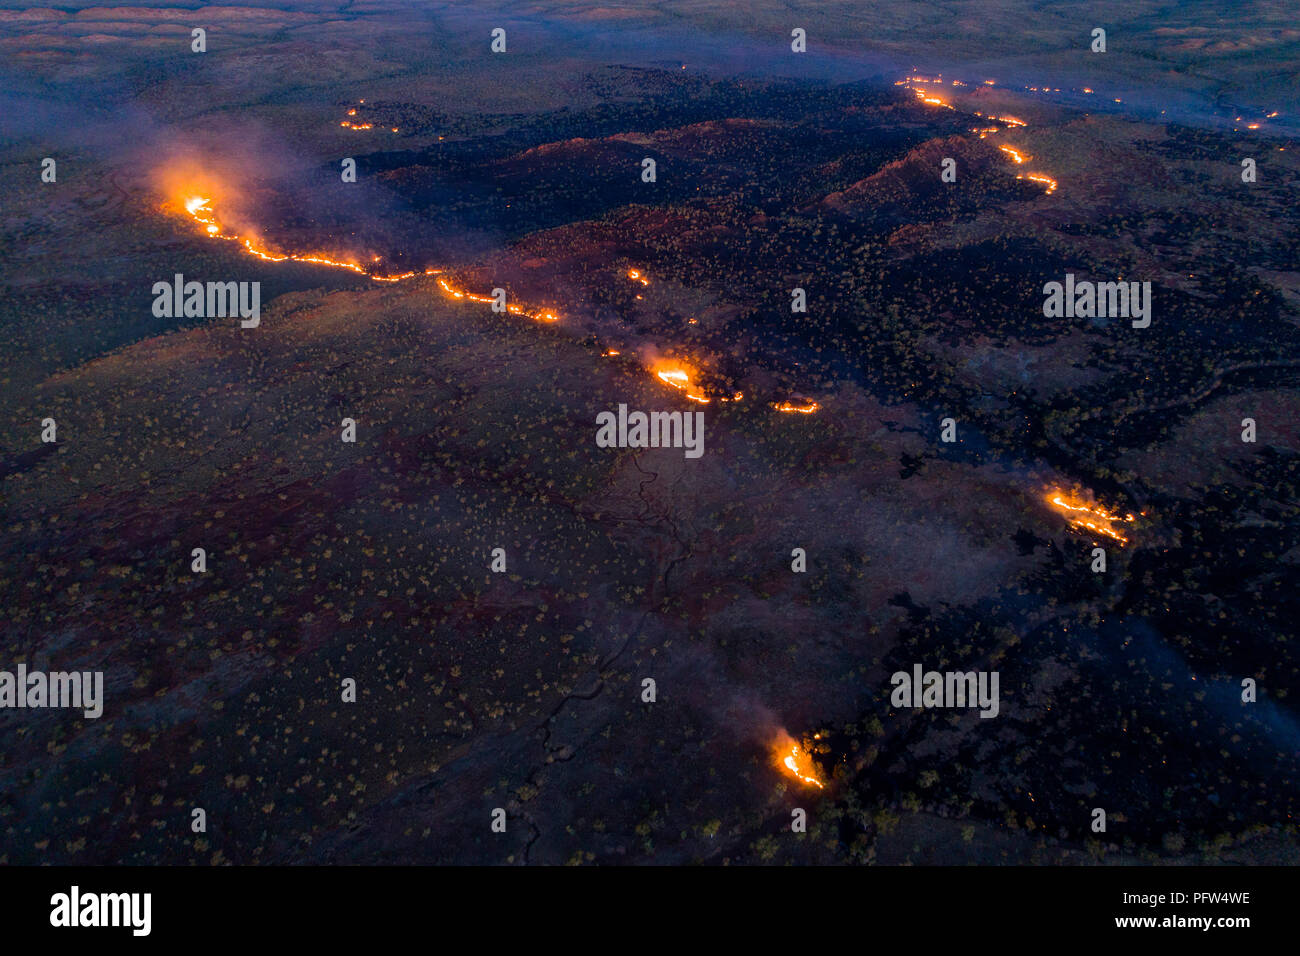 Bush fire seen from the air in Australian outback, Kimberley, Northwest Australia - Stock Image